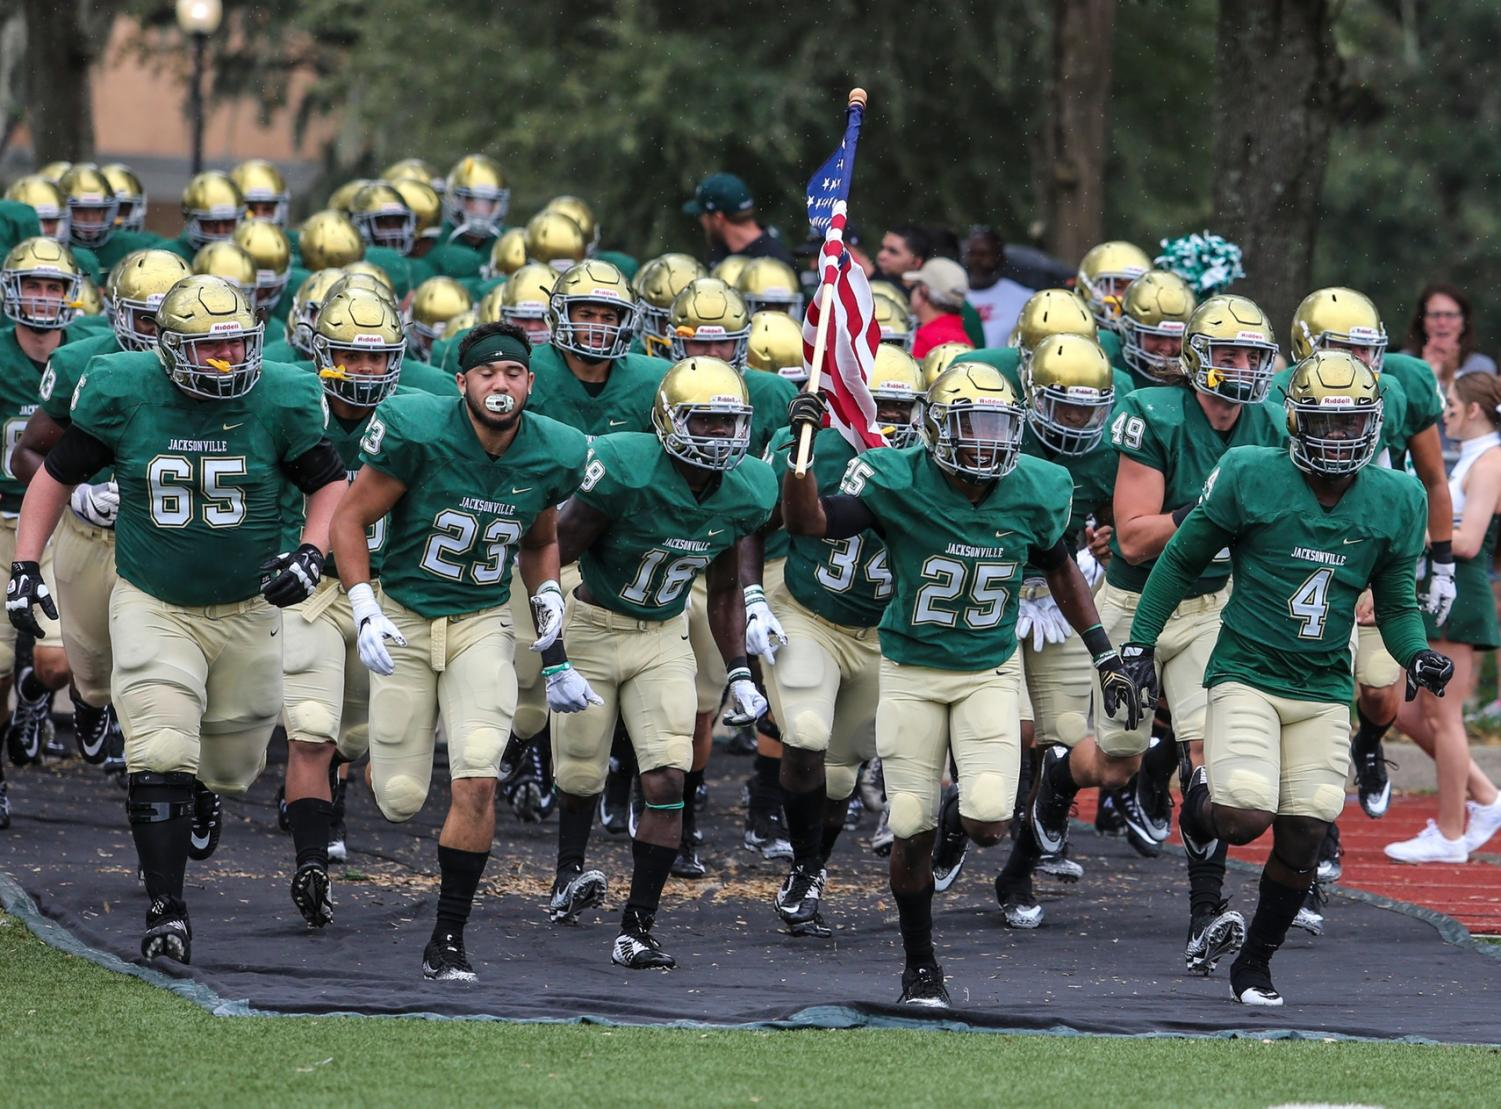 Saturday September 30: JU's football team honors veterans before home game against Guilford College.